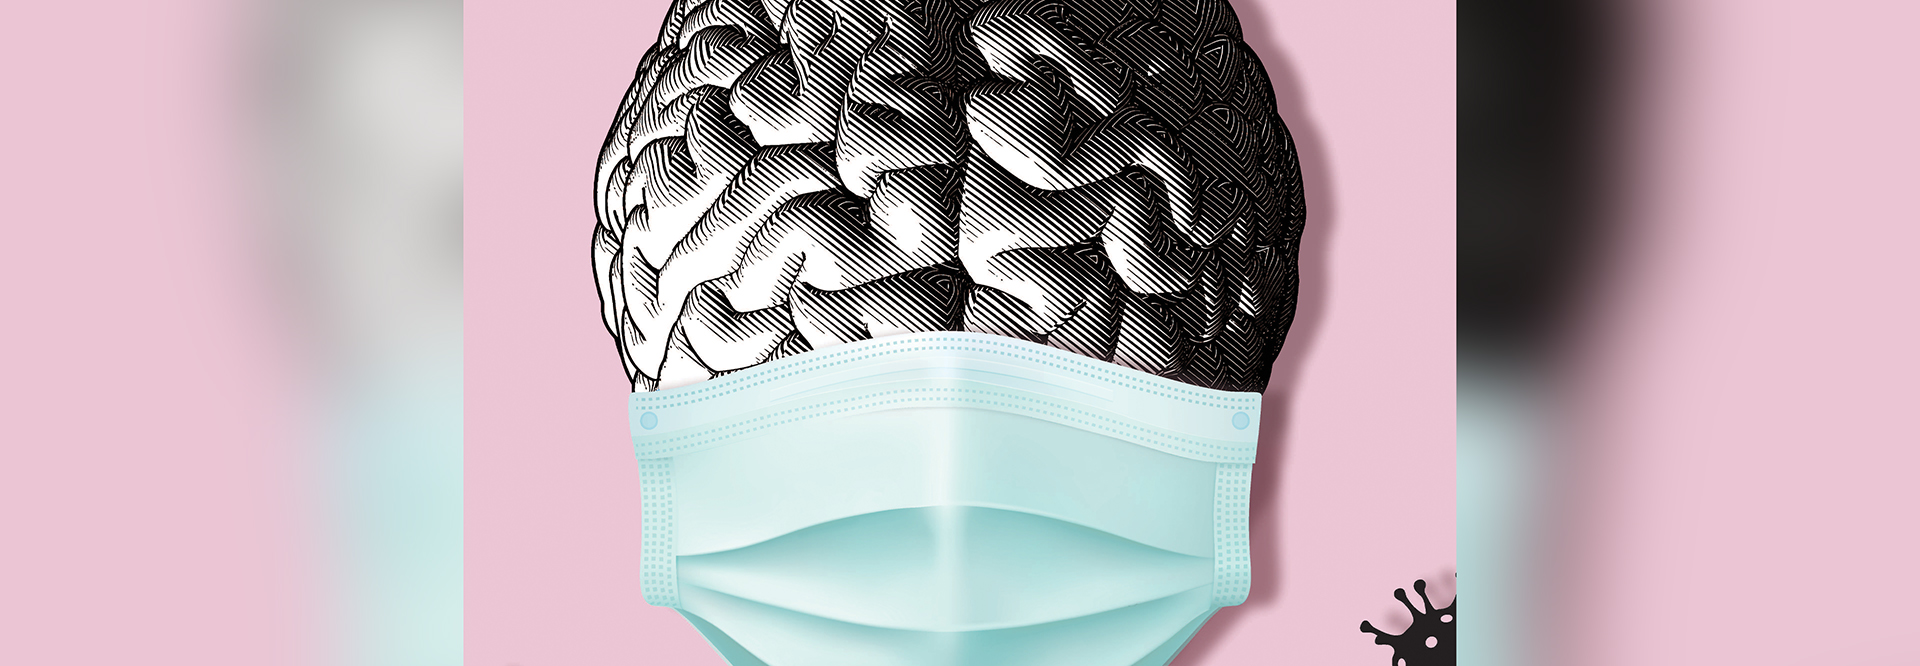 graphic illustrtion of a brain wearing a mask on a pink background